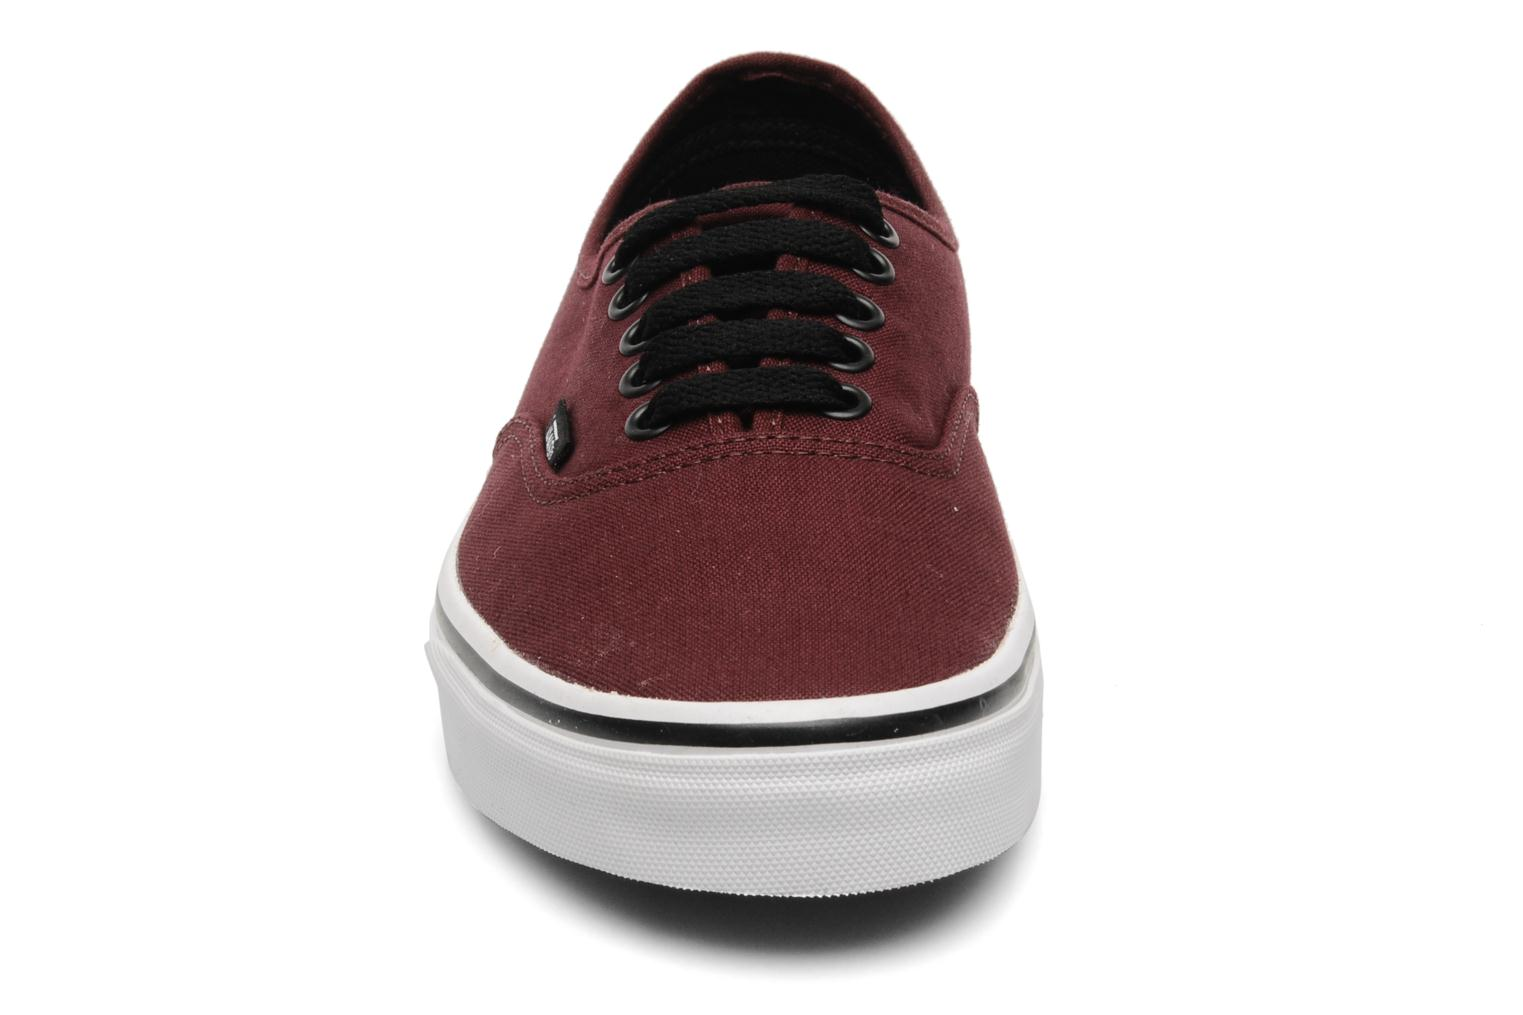 Authentic port royale/black